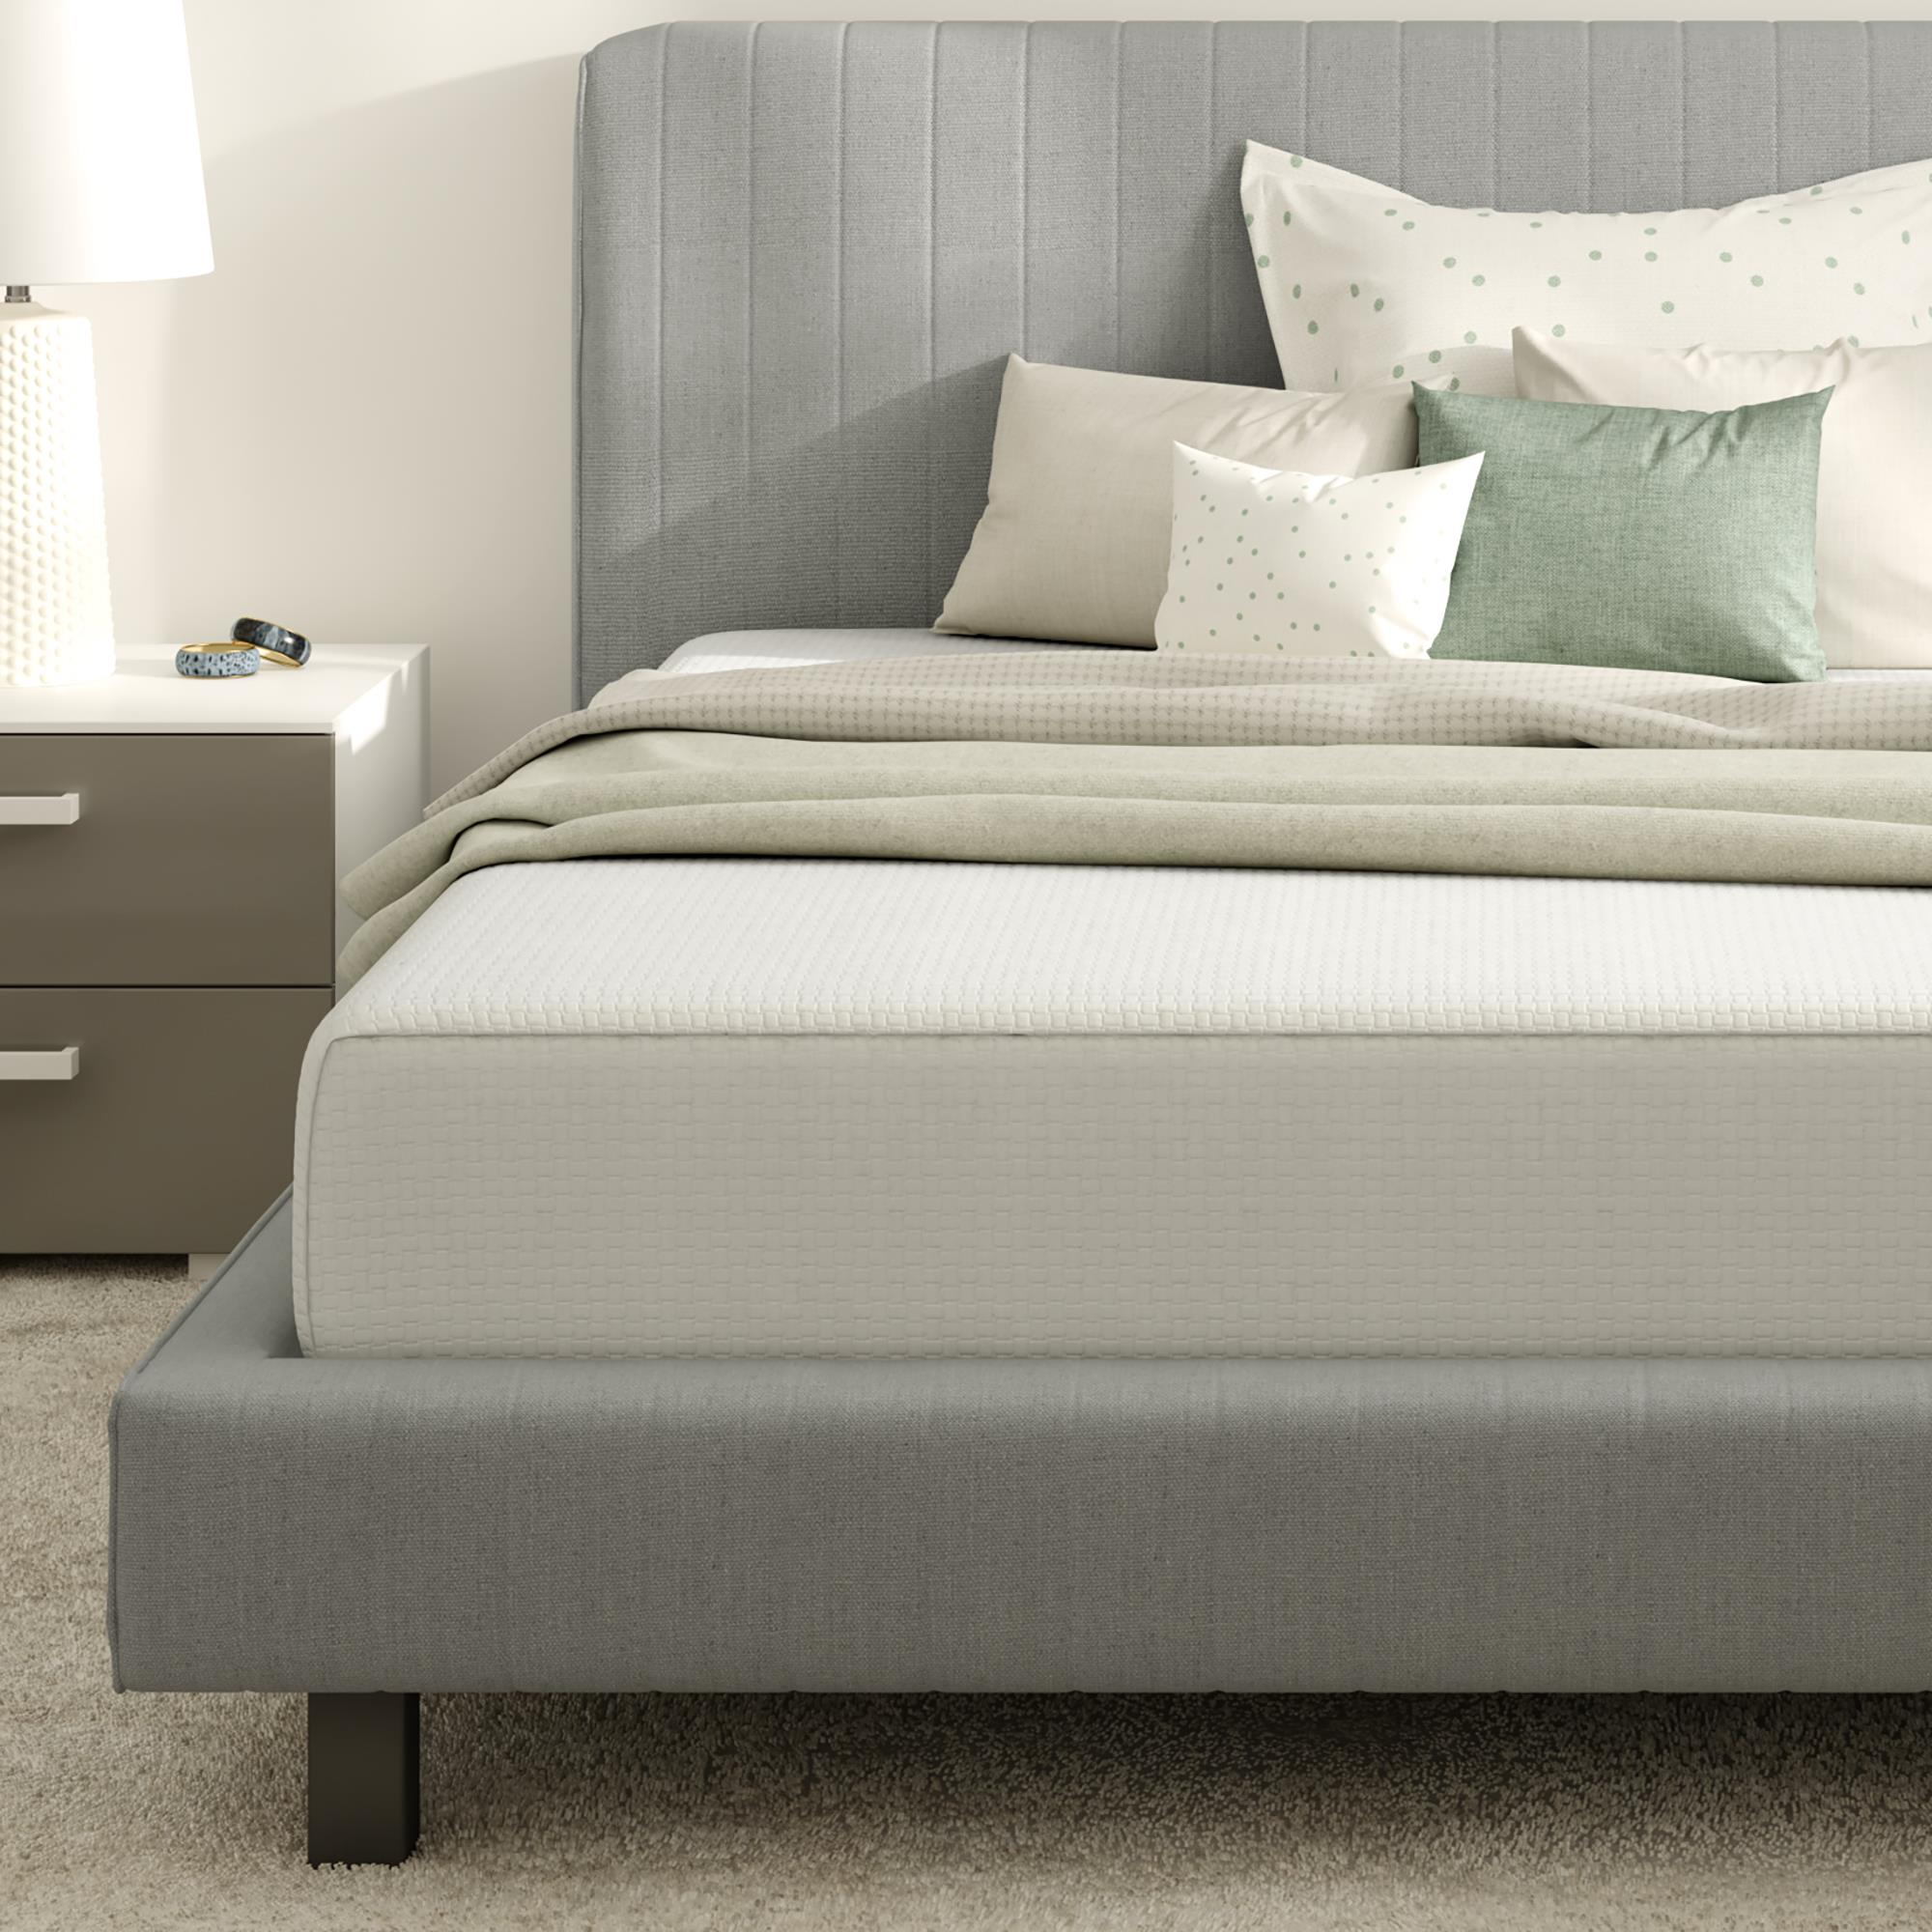 "Signature Sleep Gold CertiPUR-US Inspire 10"" Memory Foam Mattress, Multiple Sizes"